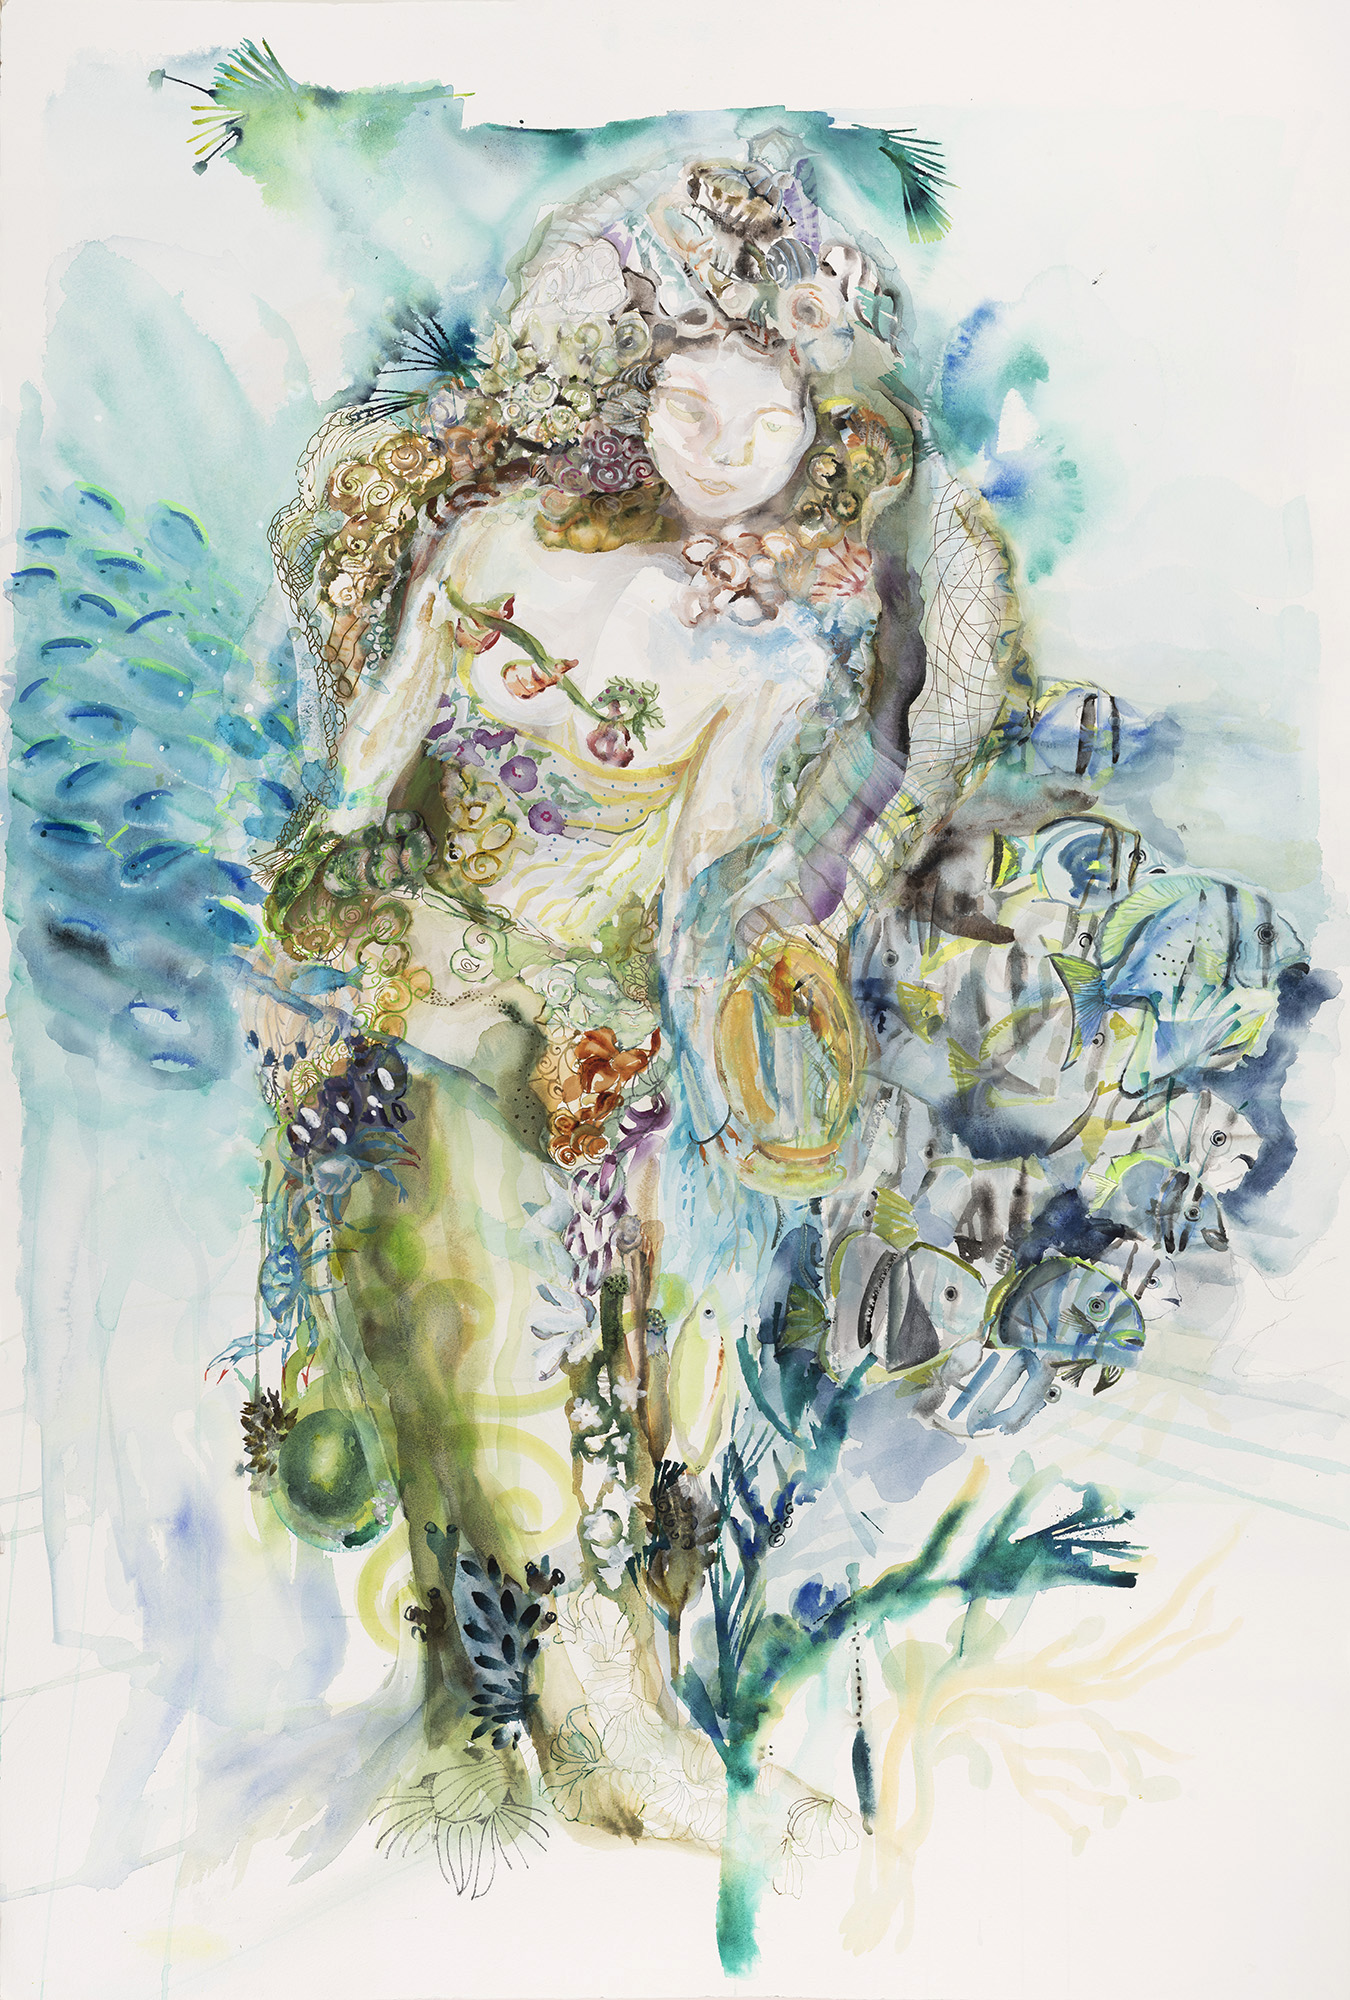 Marina in the Morning or Lady Madonna, 2019, Watercolor on paper, 60 x 40 in.